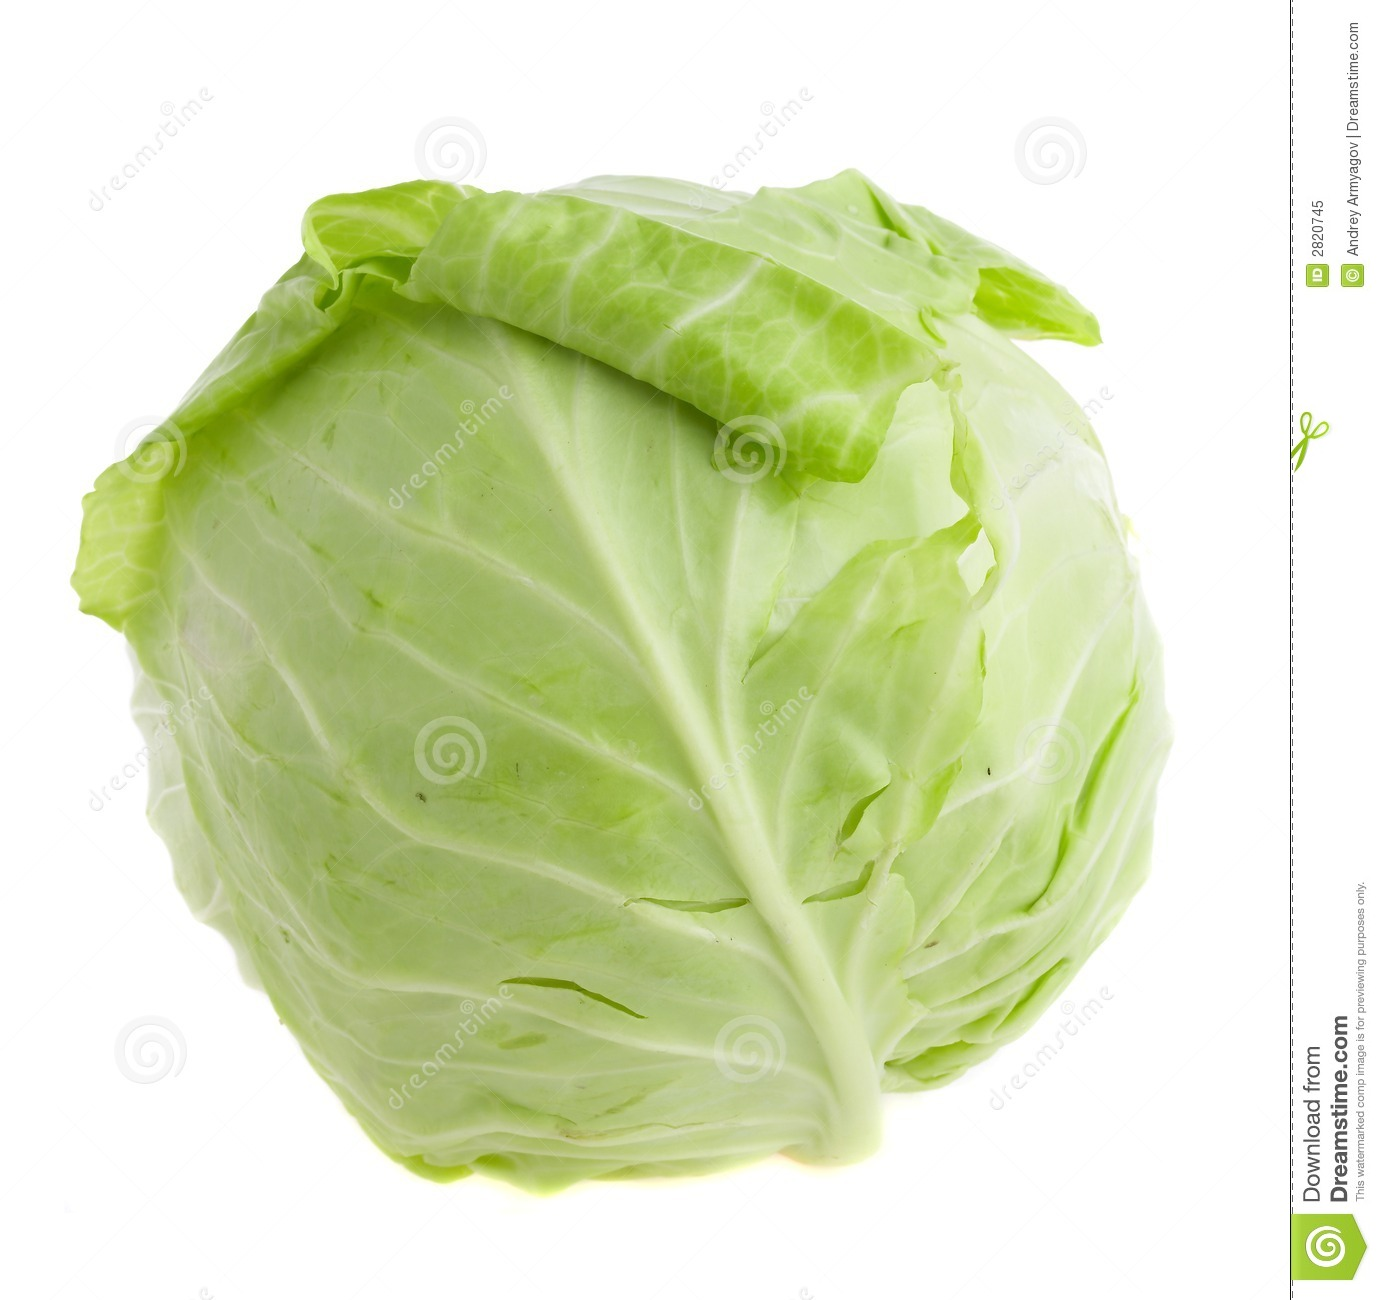 Cabbage Clipart Clipart0266 Jpg.